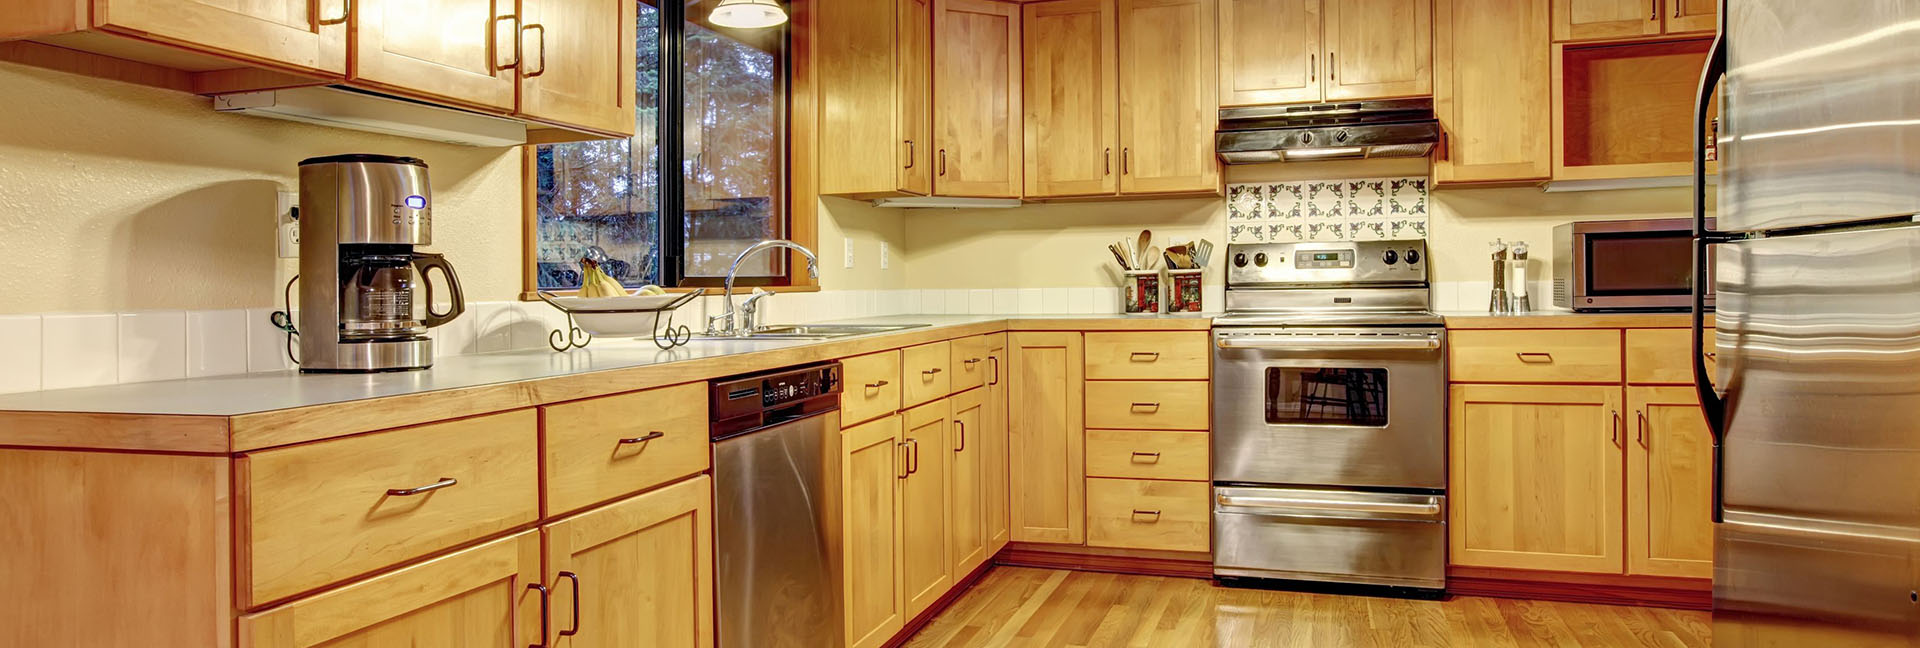 929 341 4545 Find Best Appliance Repair Services In New